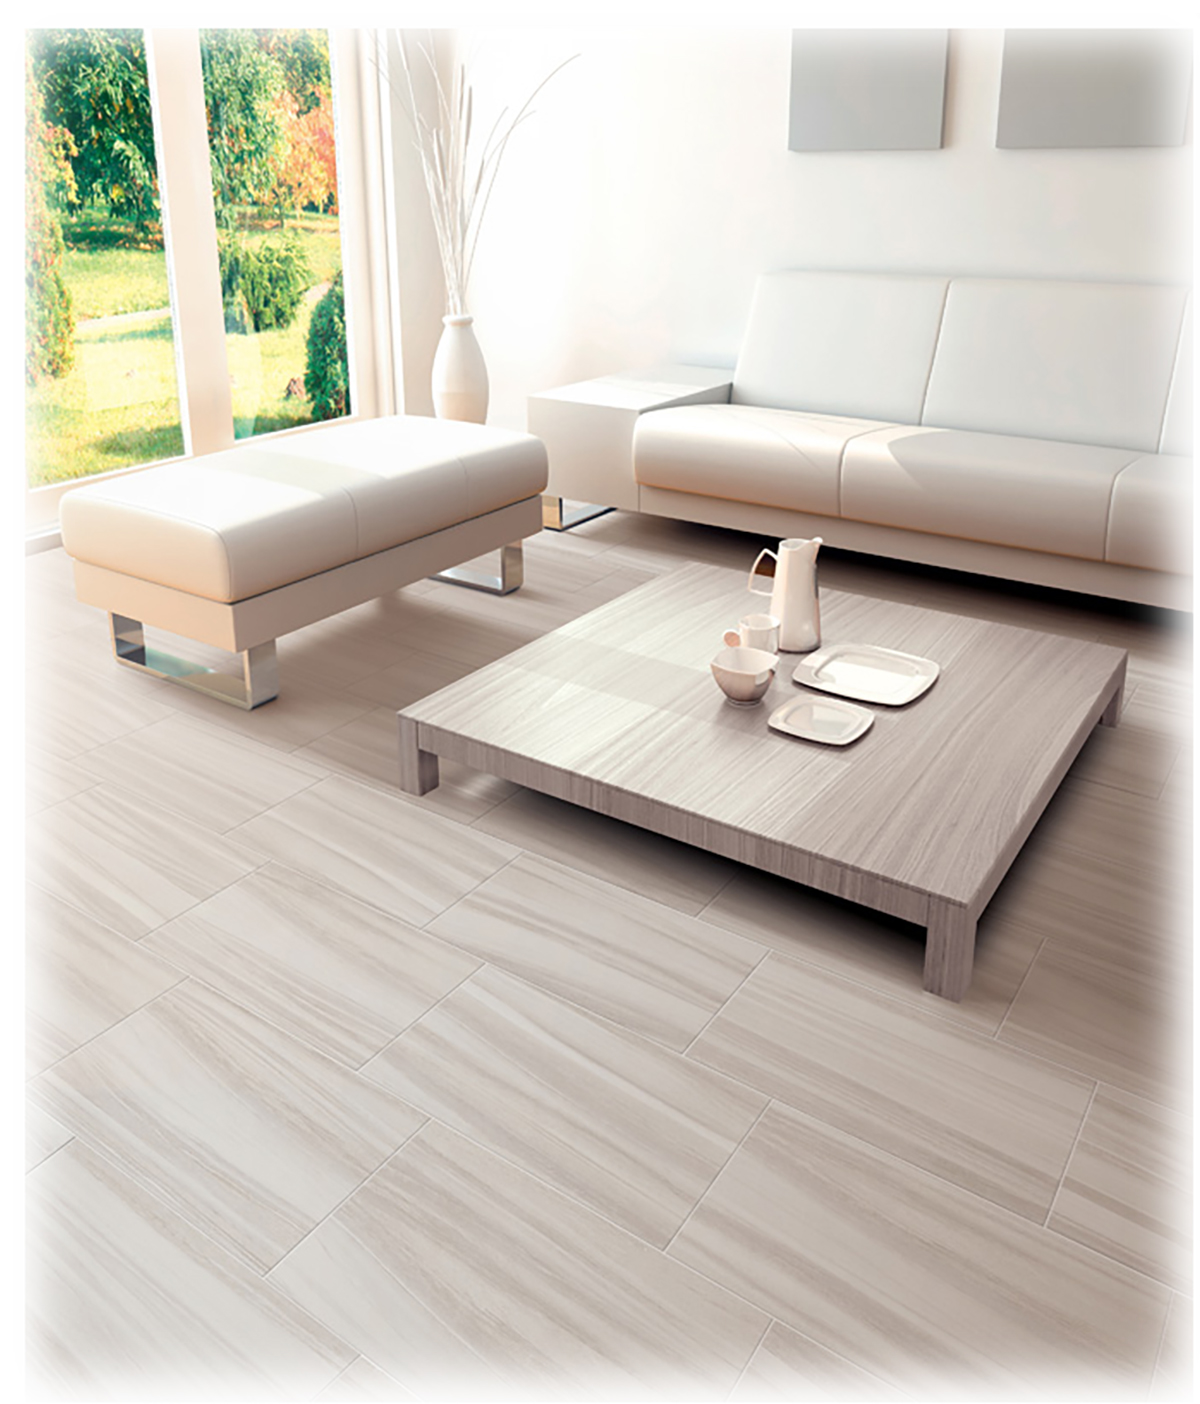 Porcelain Tile offered by Foster Flooring for high quality ...